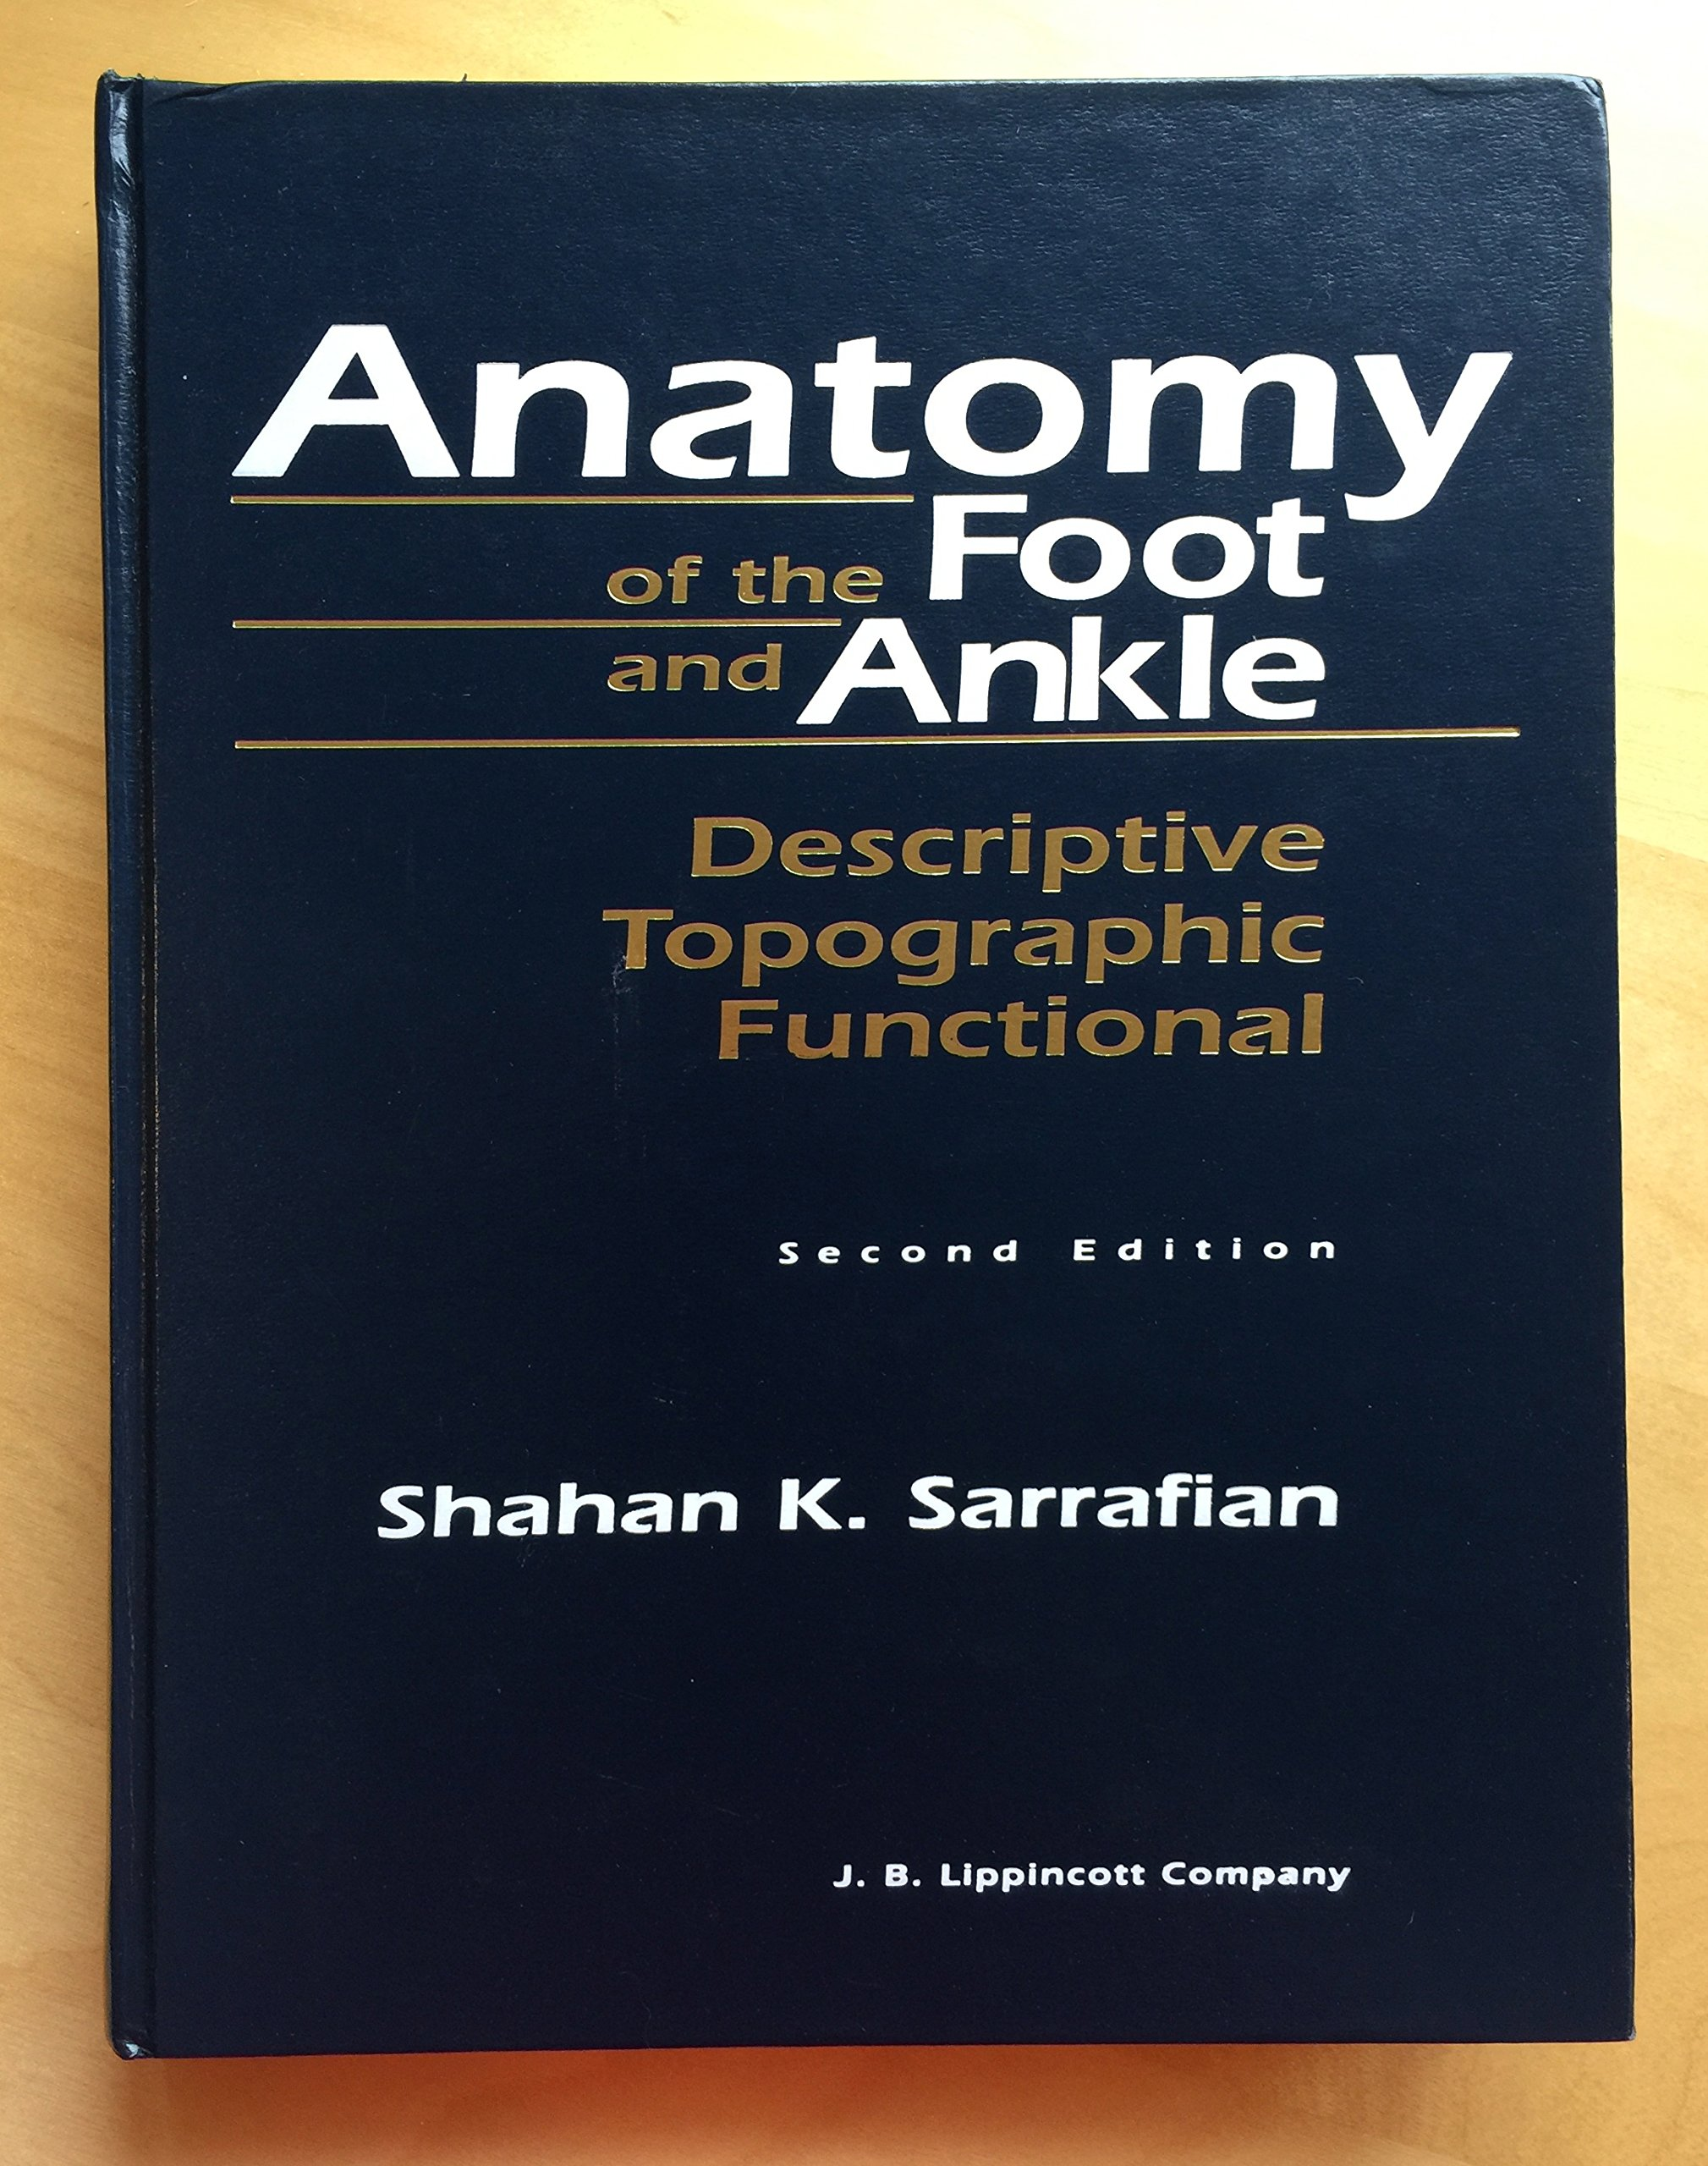 Anatomy of the Foot and Ankle: Descriptive, Topographic, Functional